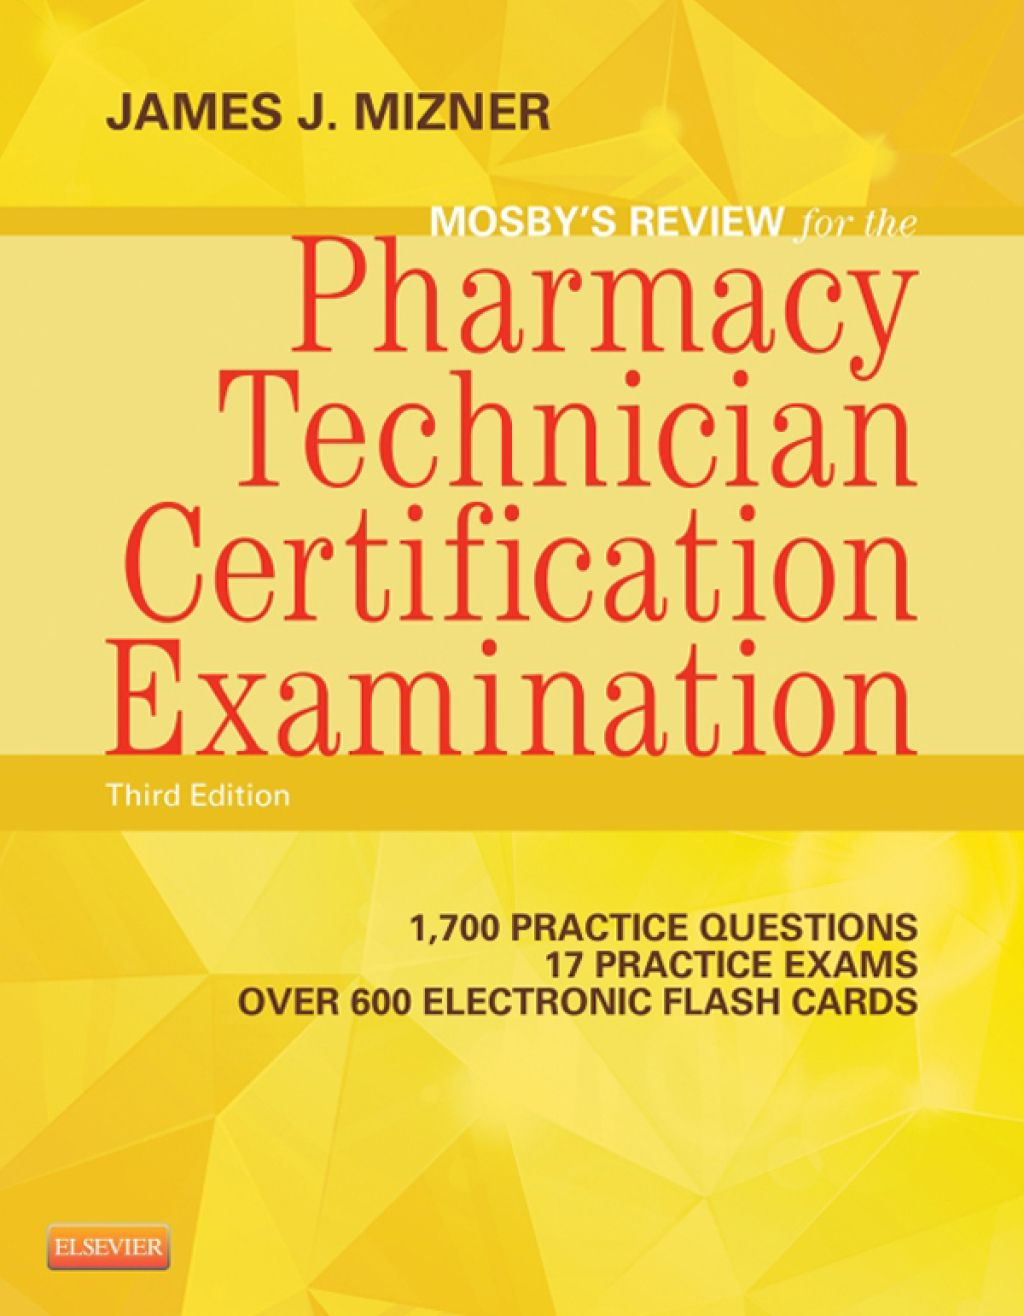 Mosby's Review for the Pharmacy Technician Certification